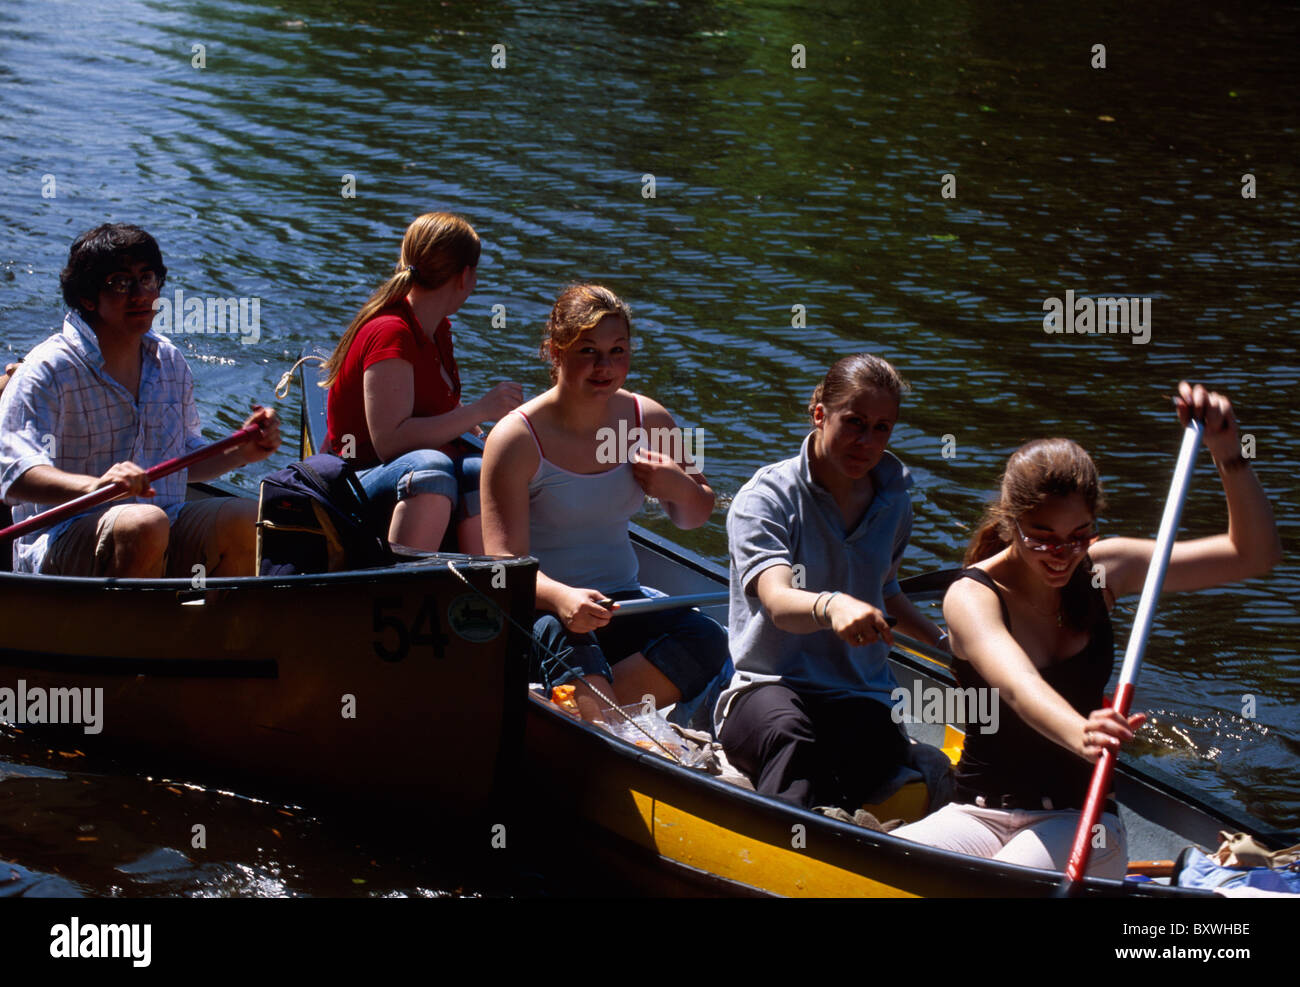 Boat trip in Uhlenhorst, Hamburg, Germany - Stock Image